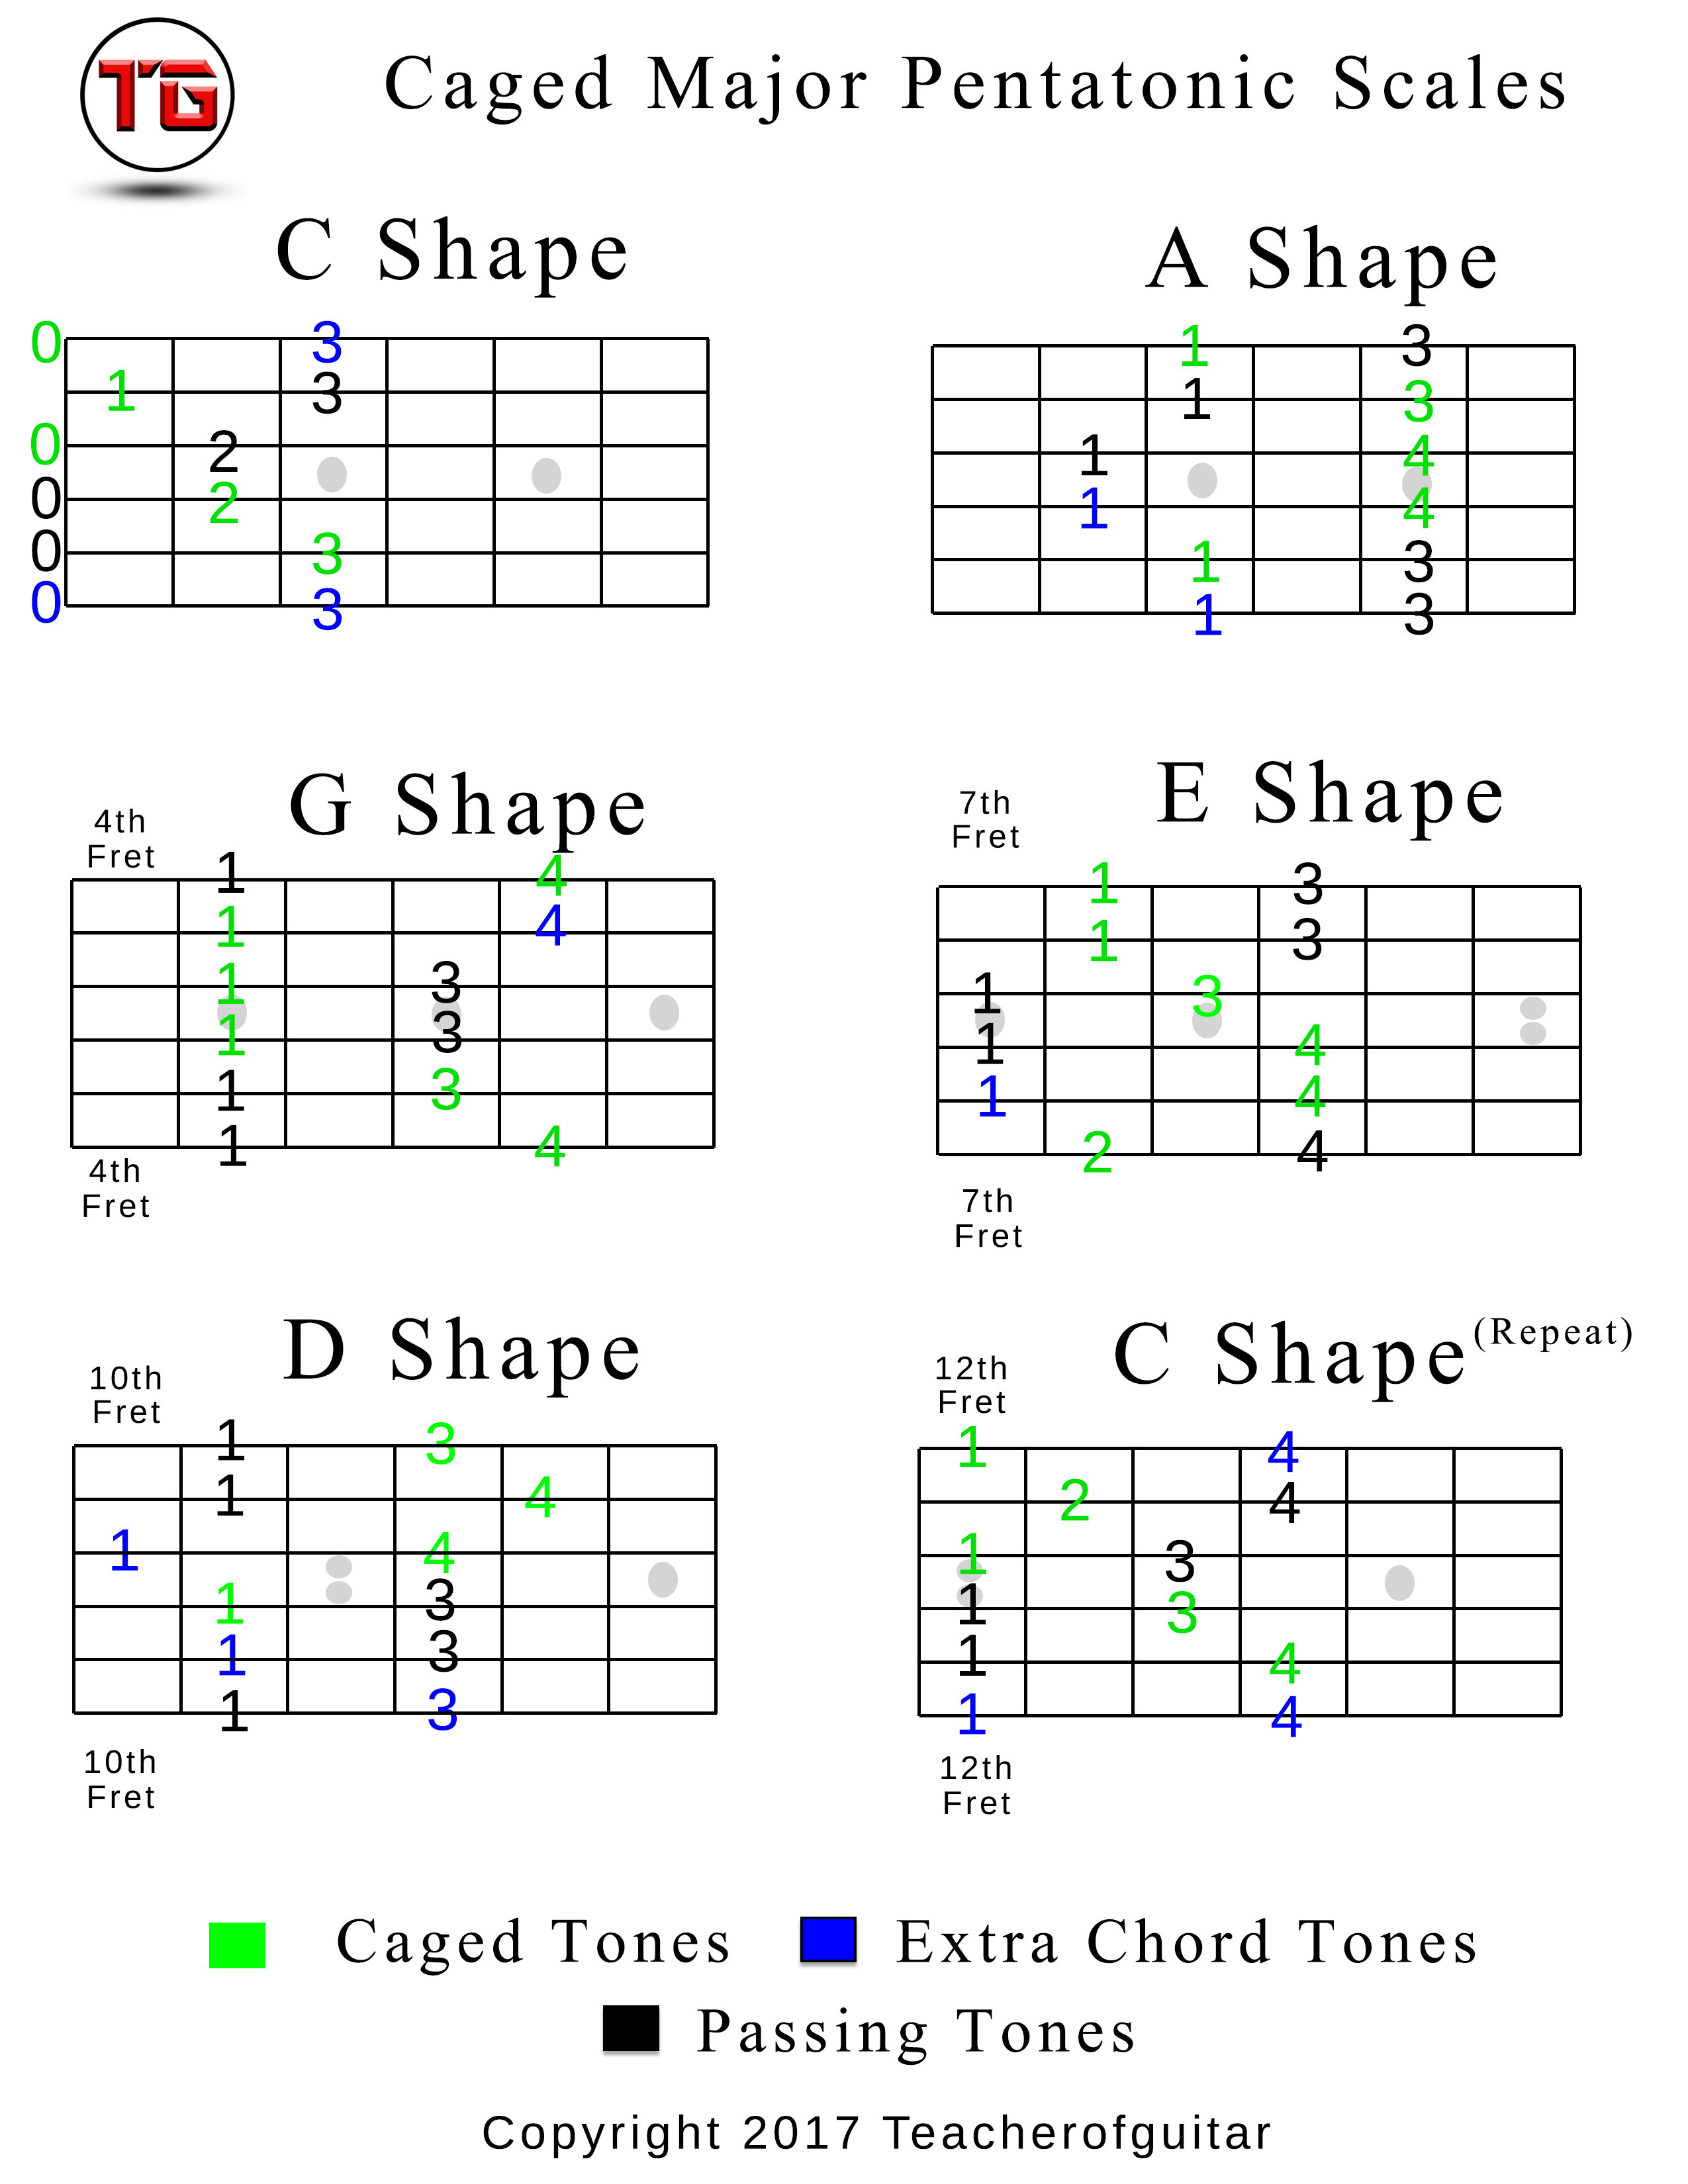 Caged Major Pentatonic Scales Chart In C Teacher Of Guitar